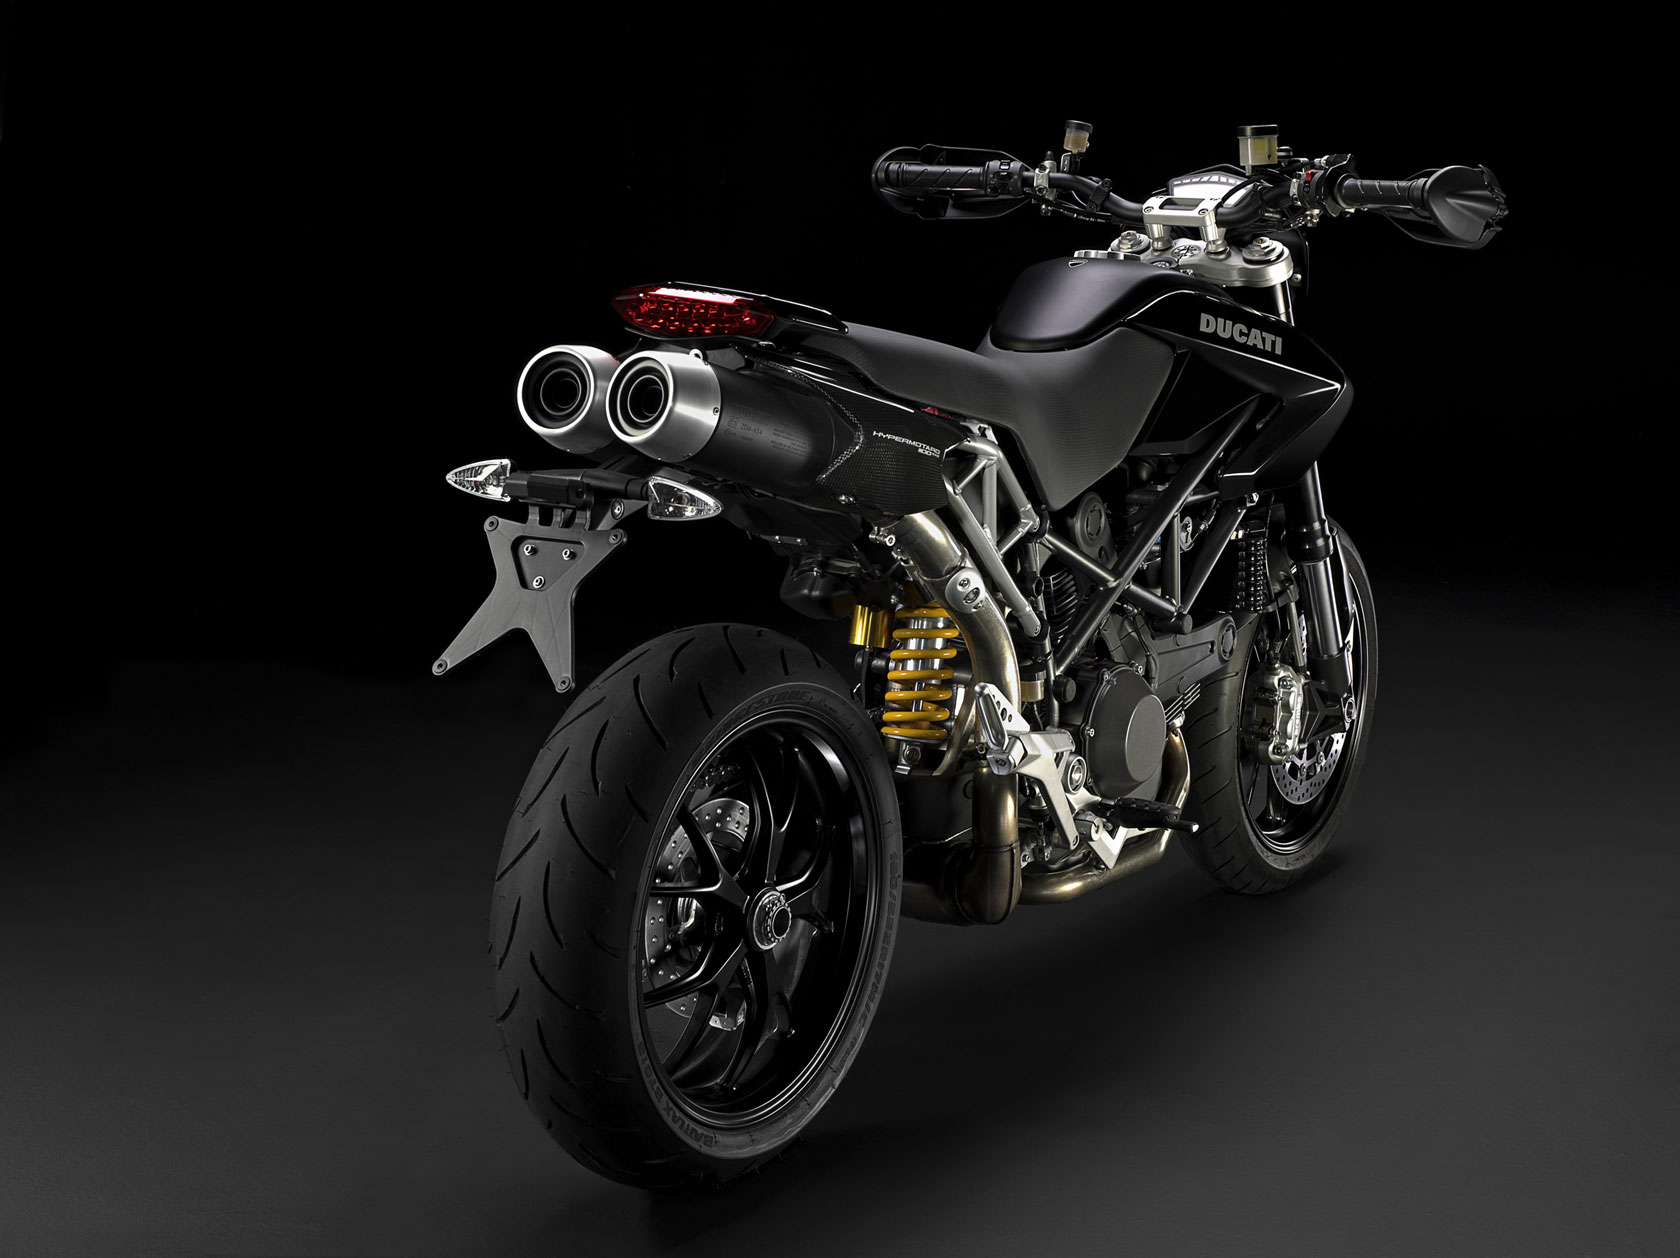 2010 ducati hypermotard 1100 evo evo sp review top speed. Black Bedroom Furniture Sets. Home Design Ideas